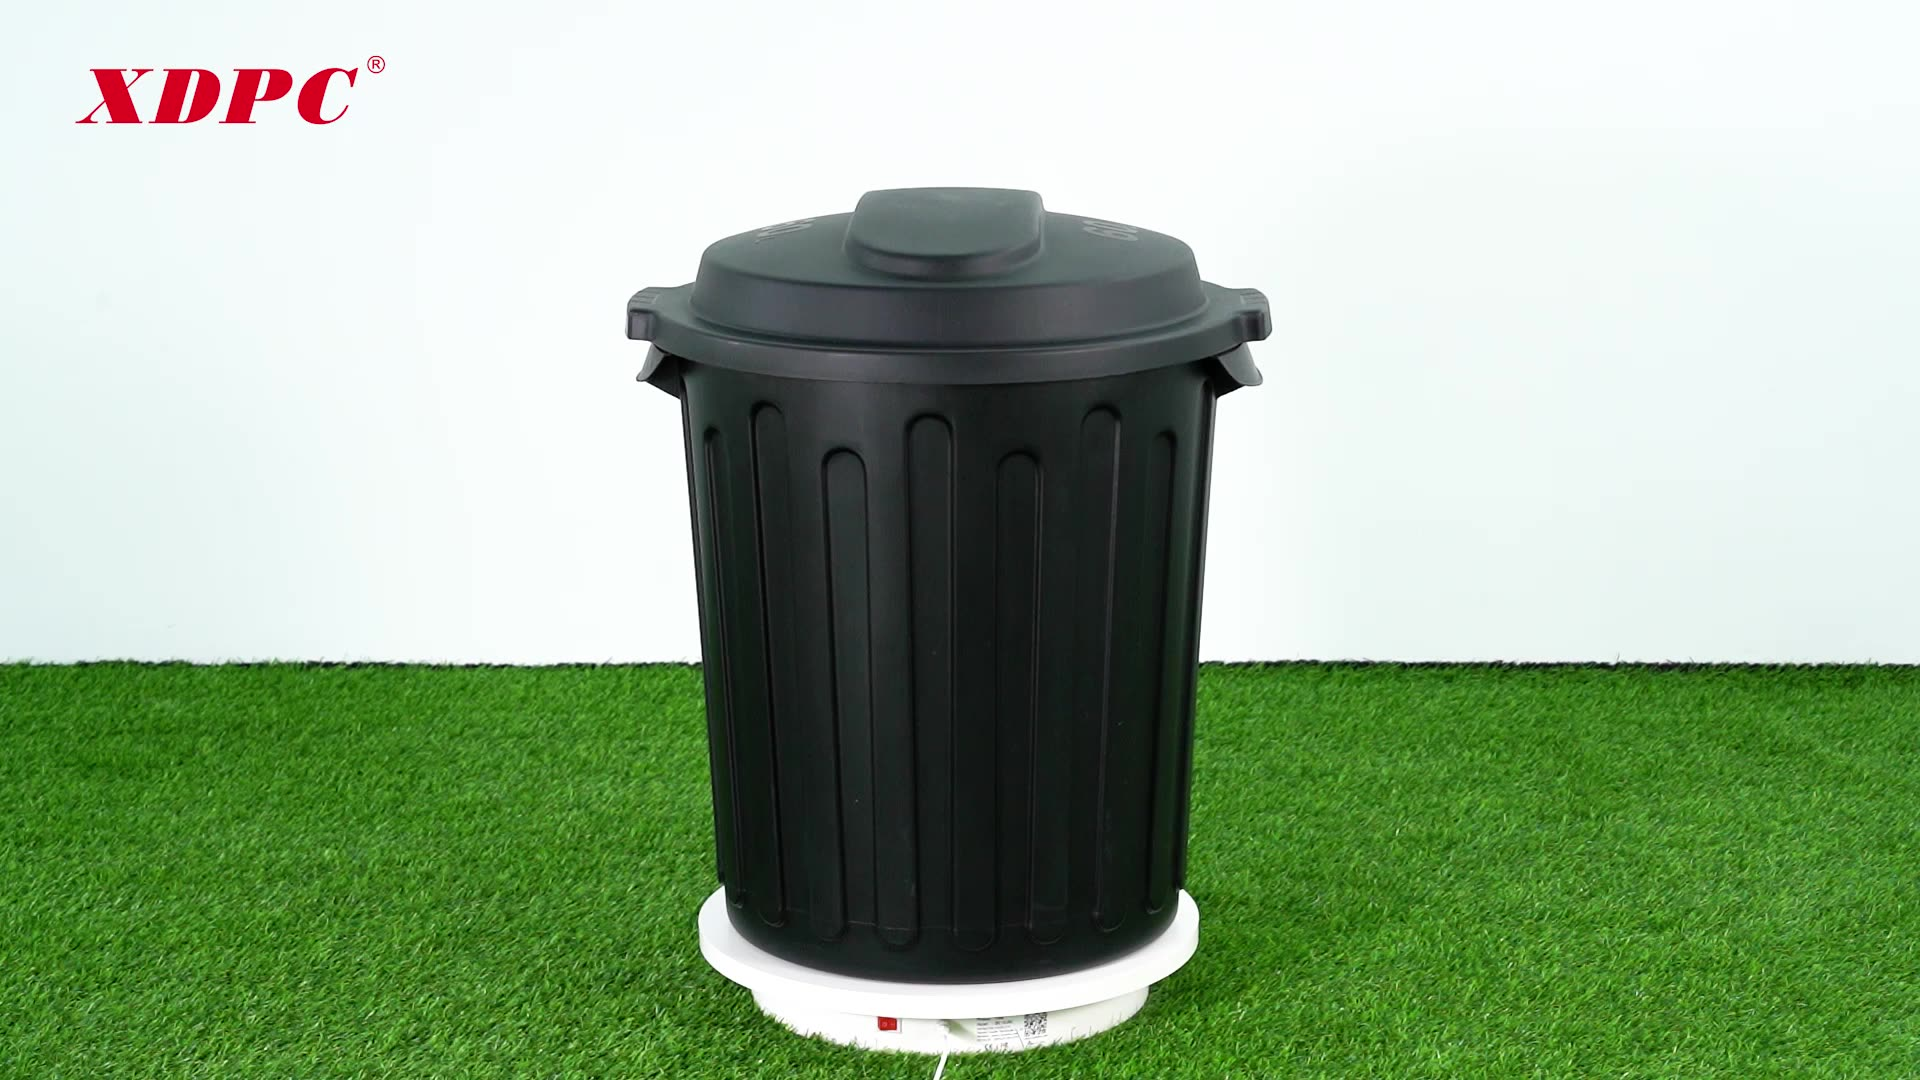 China factory wholesale cheap custom kitchen trash bins plastic round water buckets with lids